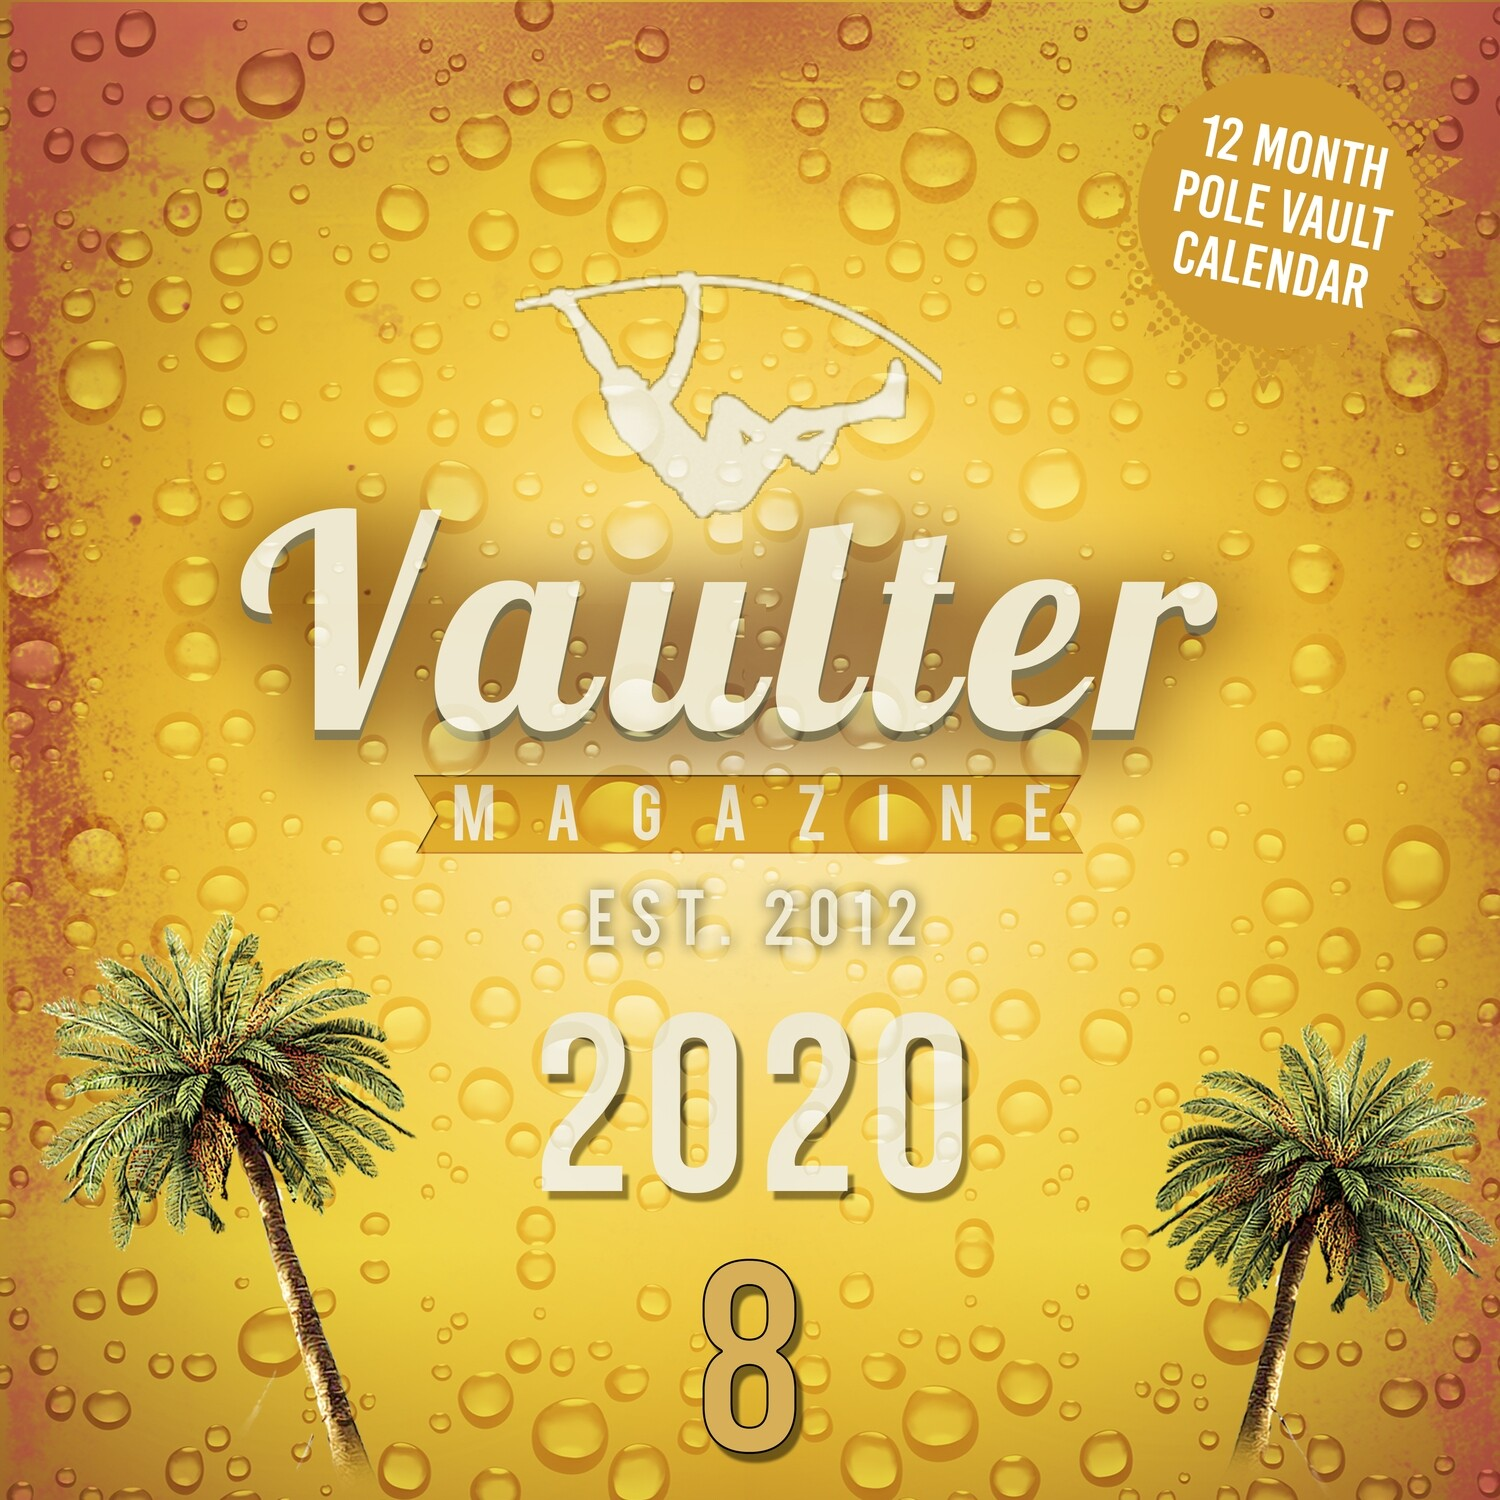 2020 Vaulter Magazine Series EIGHT Calendar